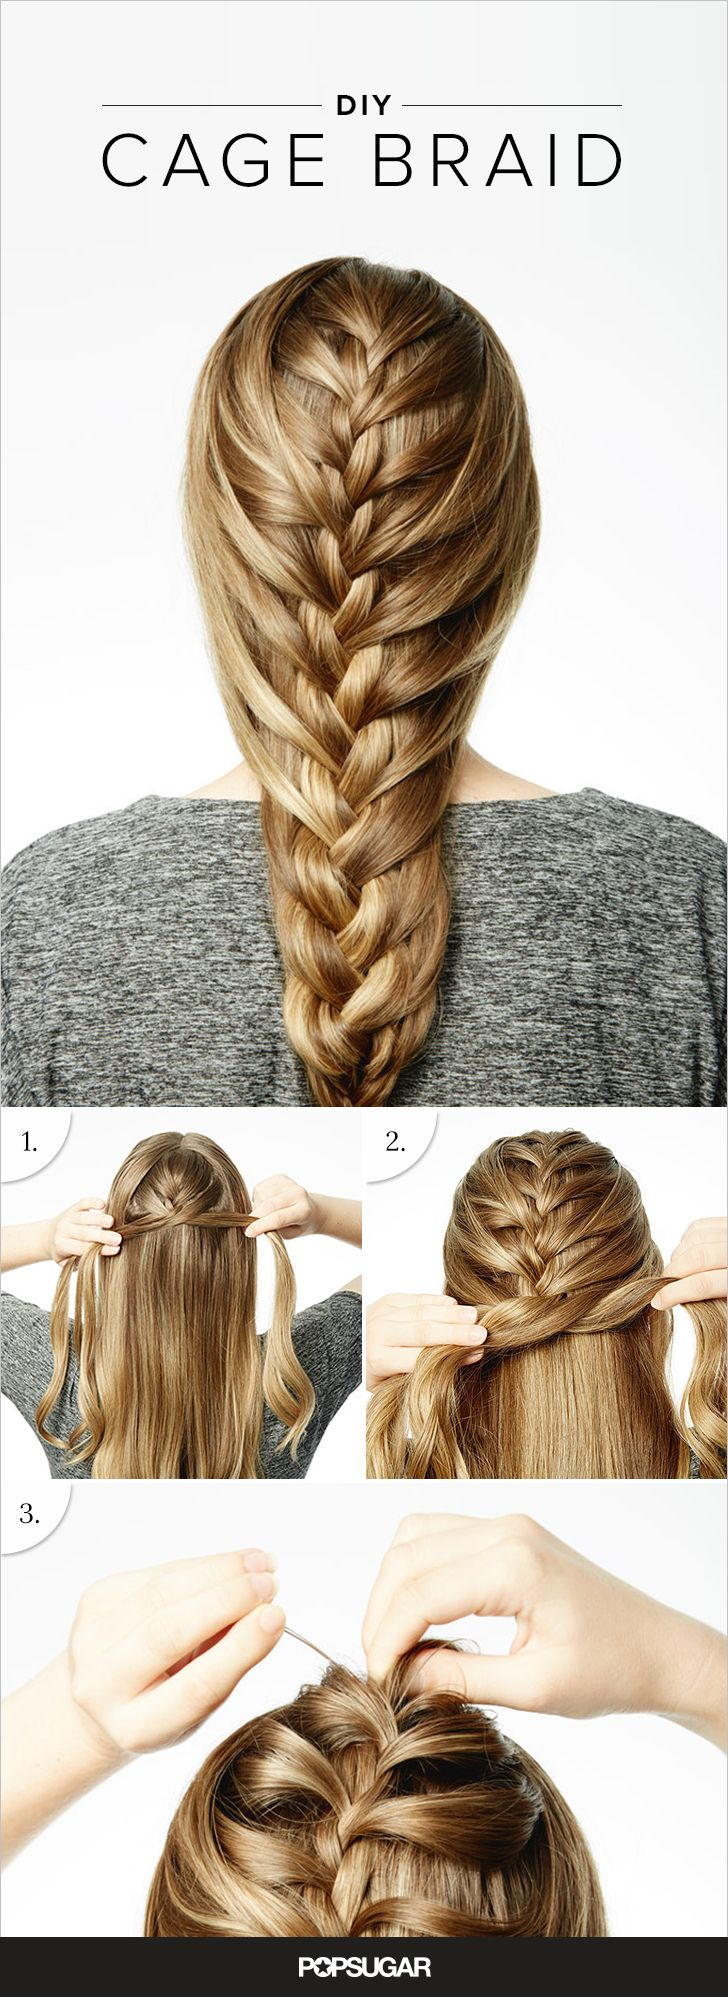 Like most of the epic braids we envy, we first spotted the cage braid on Instagram. The plait is a combination of the classic french and a fishtail. A central braid sits between little waterfalls of hair that move from the outside in. The finished plait looks just like a ribcage. At first glance, it seems impossible to do at home, but it is a lot easier to achieve than it looks. T3 celebrity hairstylist David Lopez broke down the twisted style into three simple steps ahead.